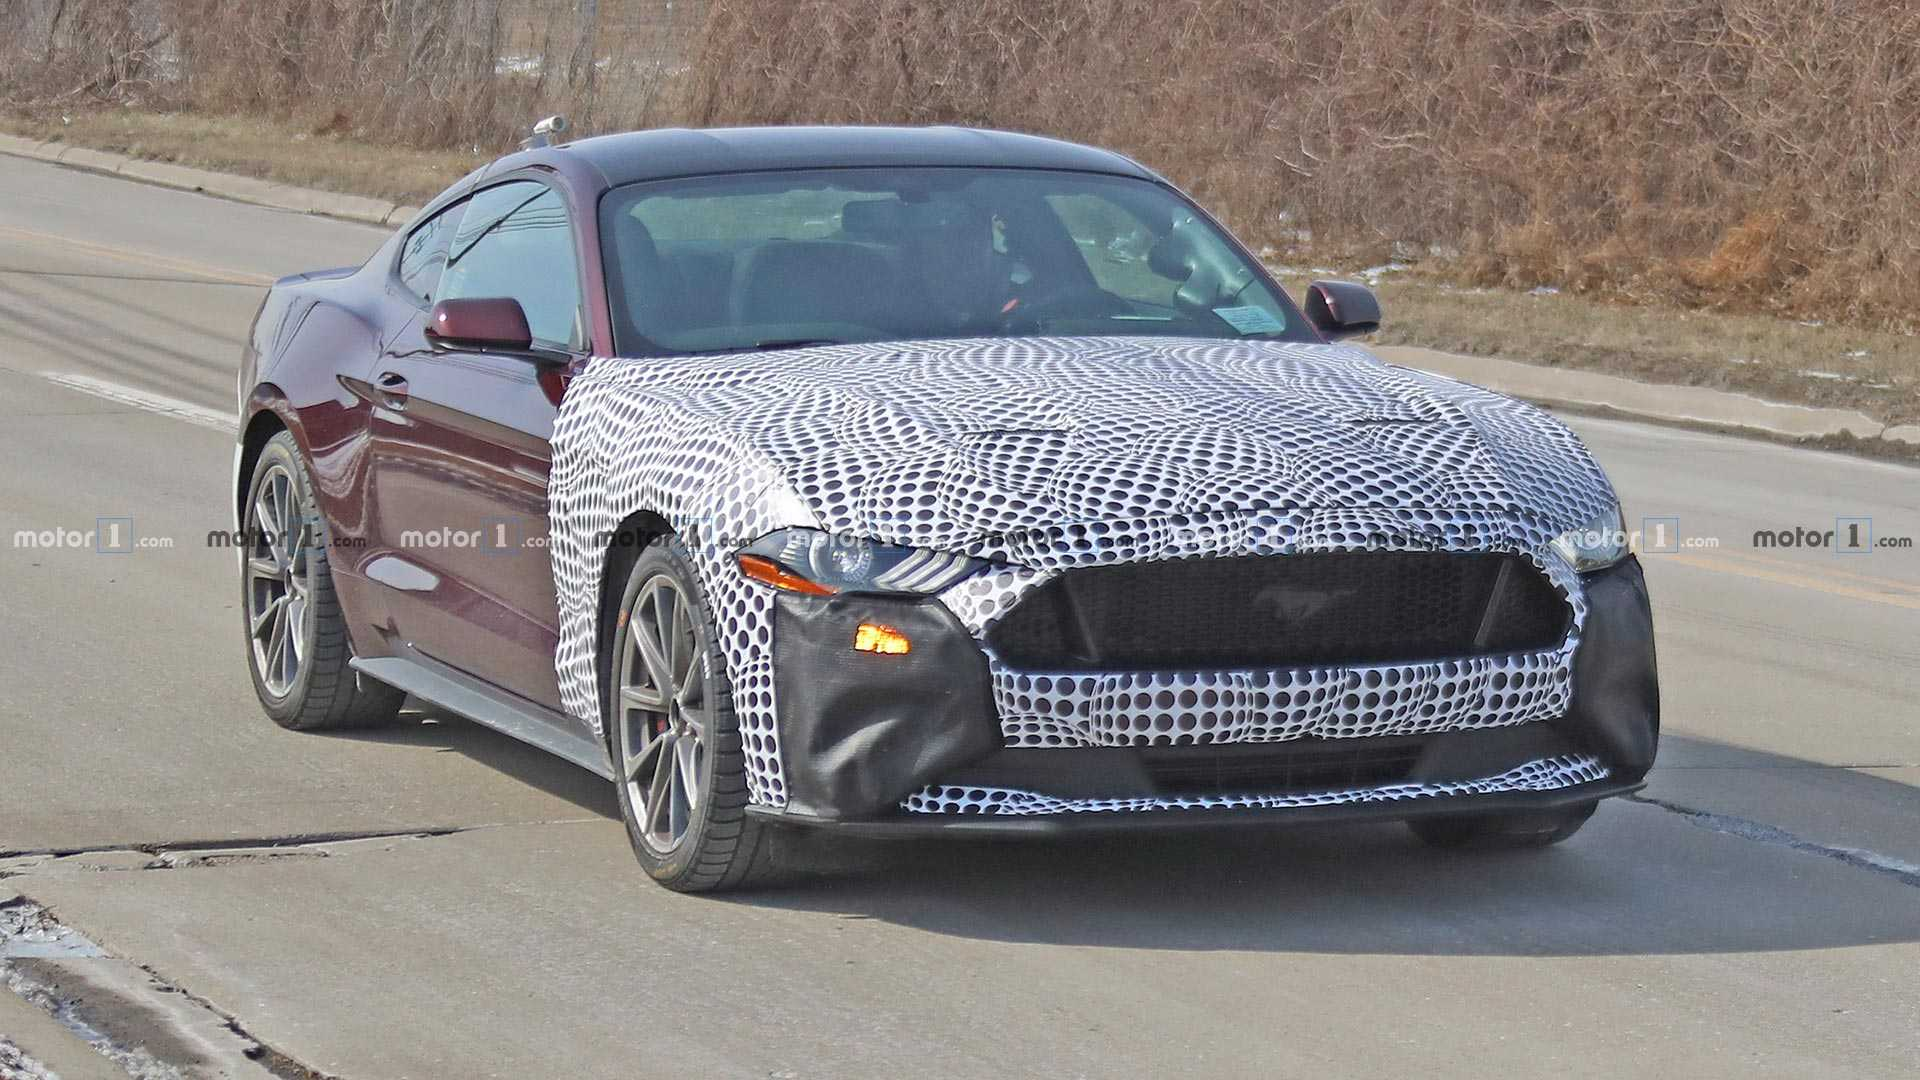 Ford mustang hybrid test mule possibly spied on the road